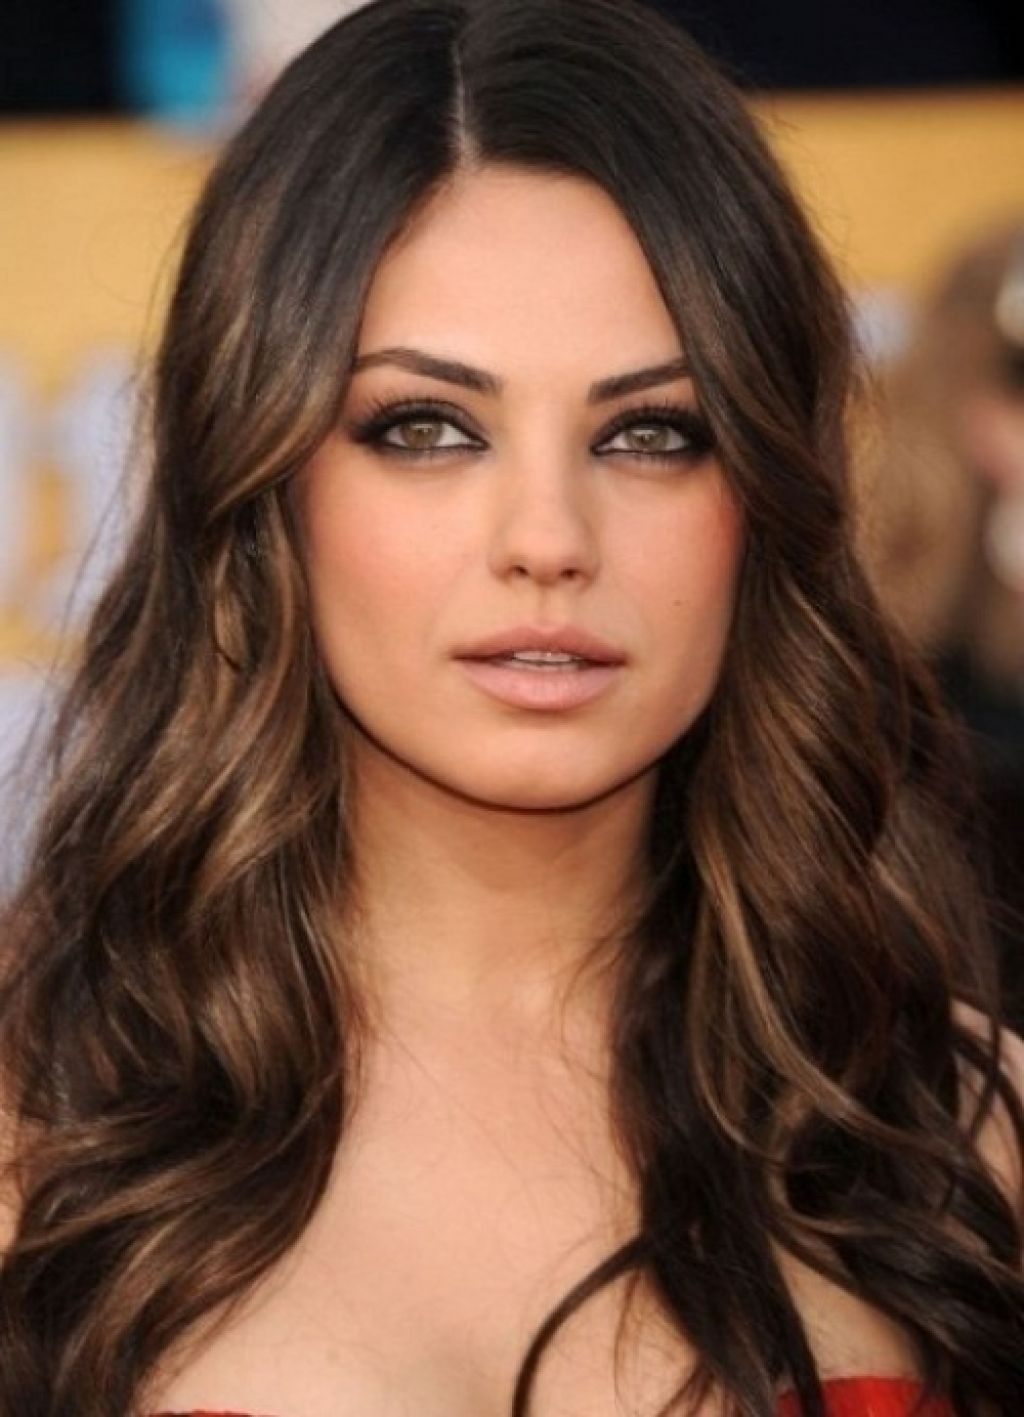 Medium Skin Tone Hair Color | Find your Perfect Hair Style